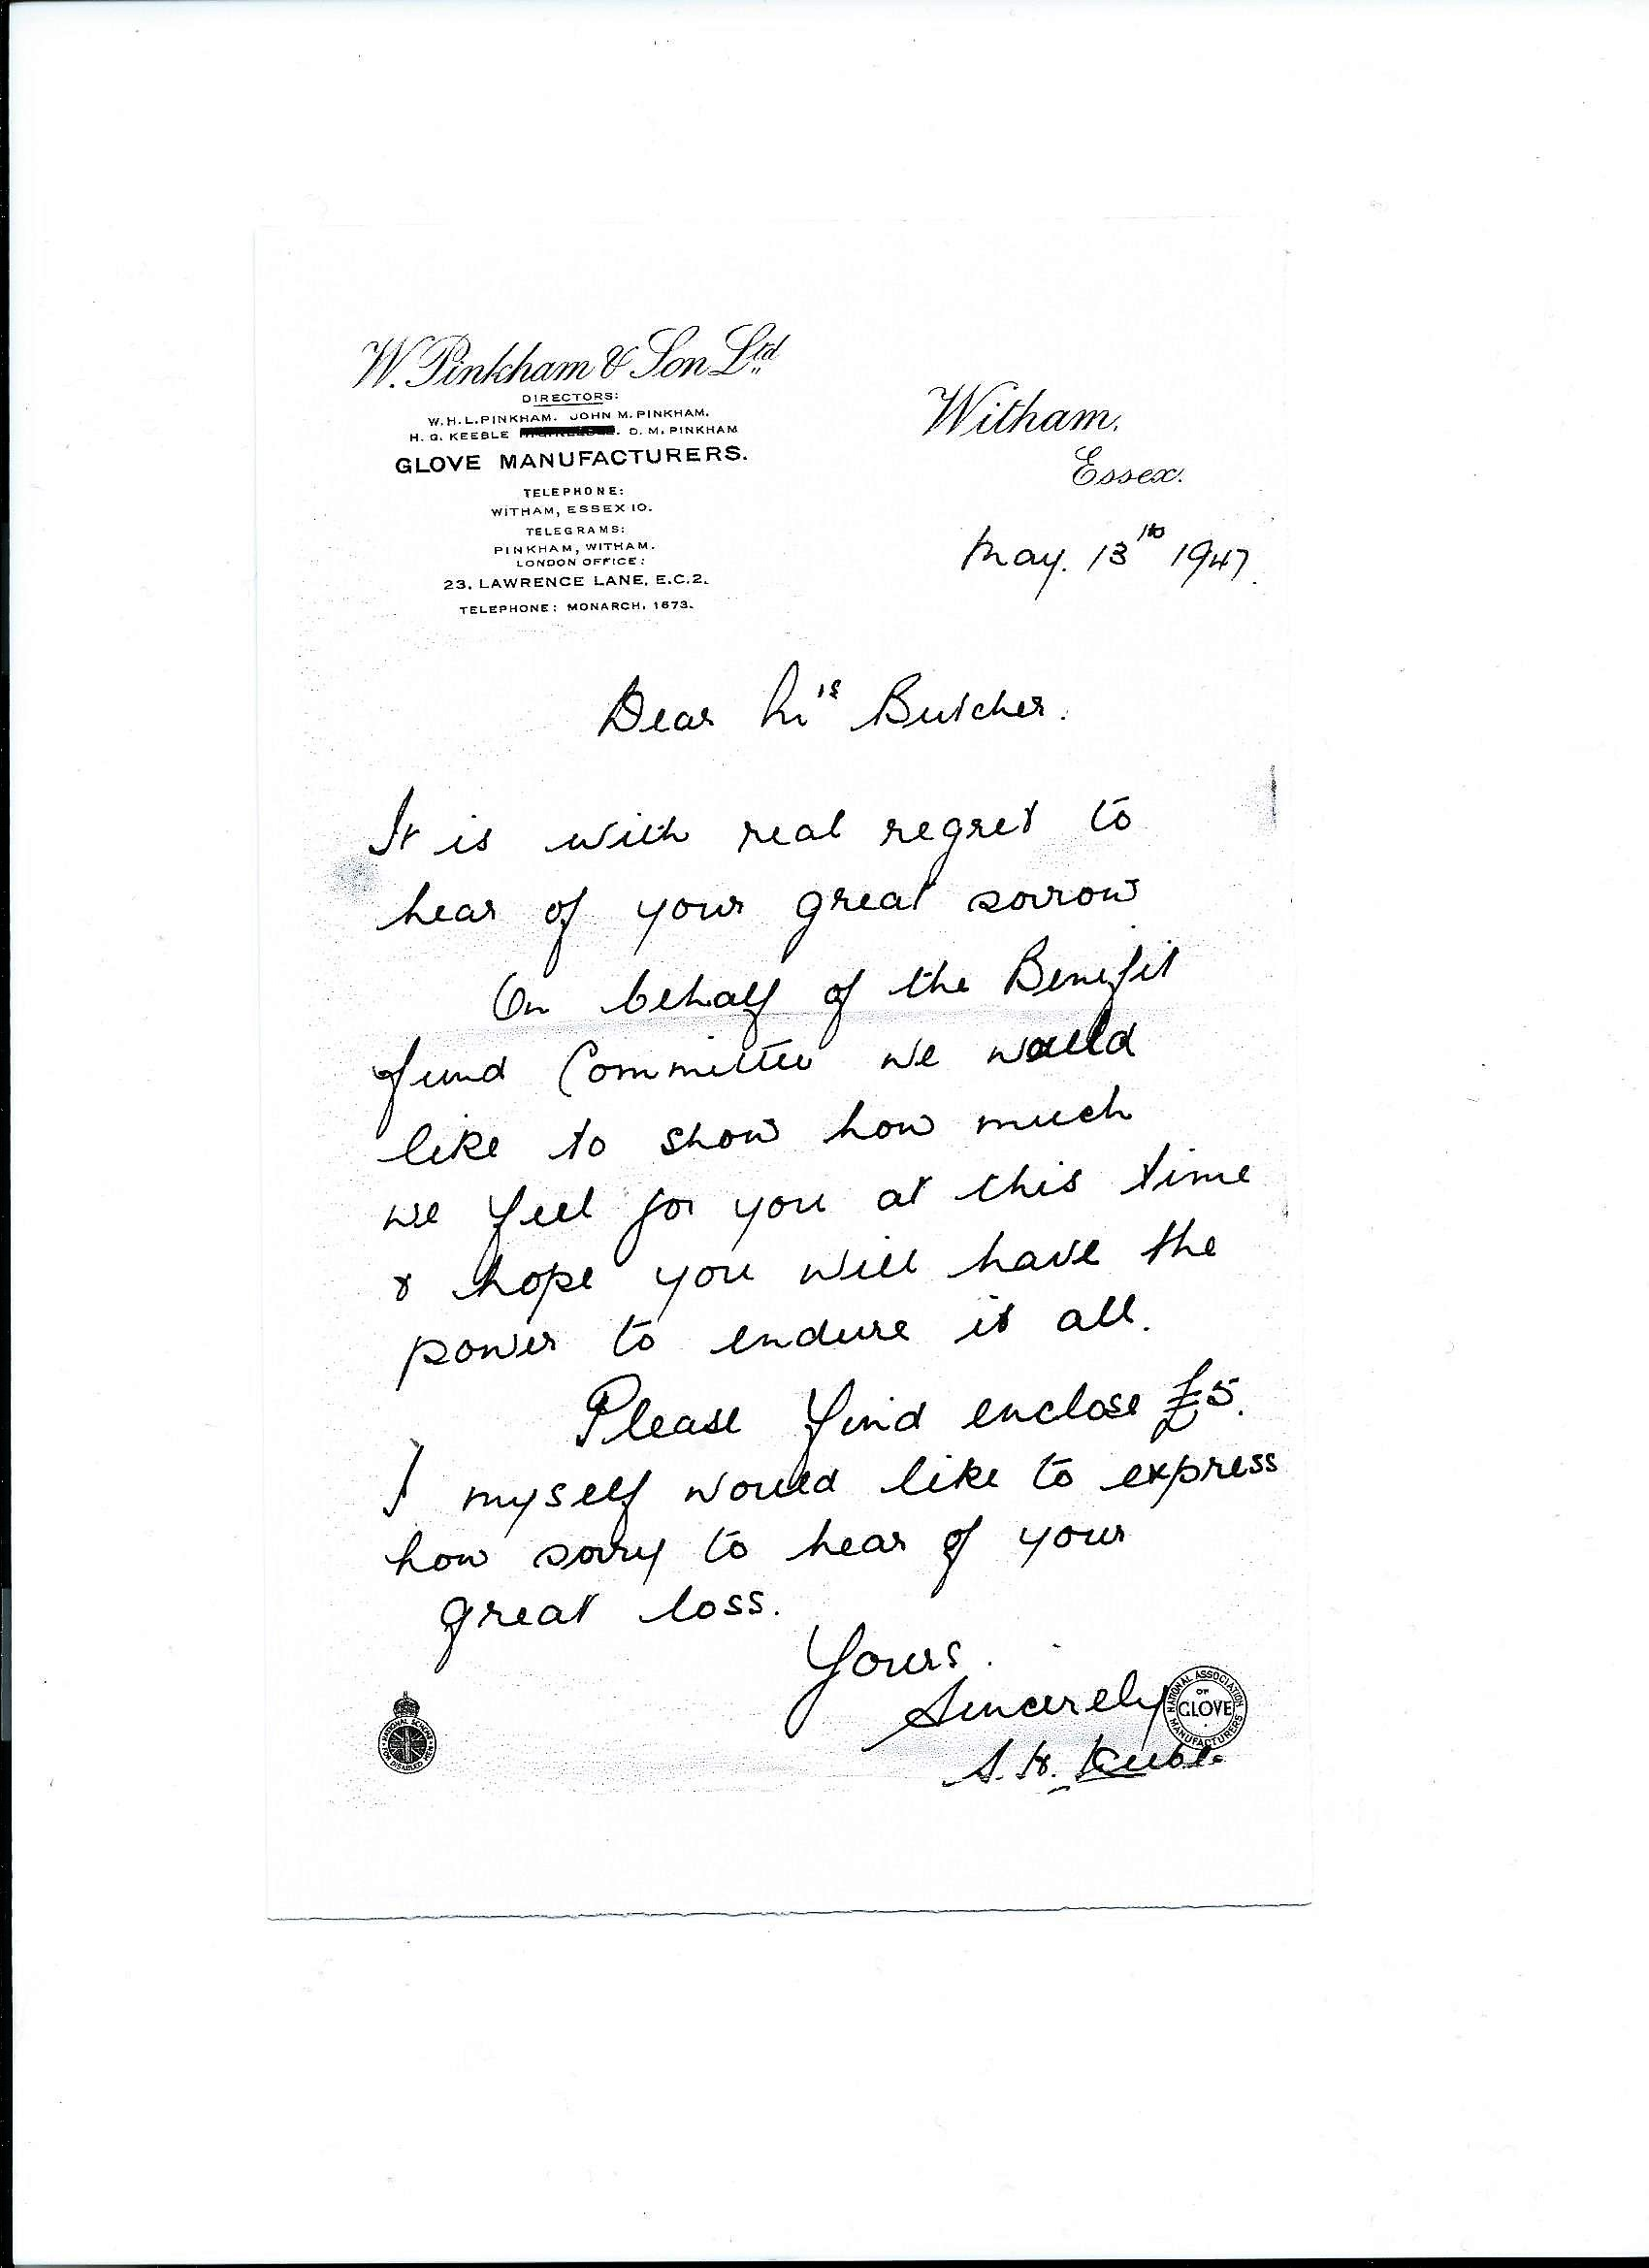 Letter S Keeble to Mrs Butcher May 1947